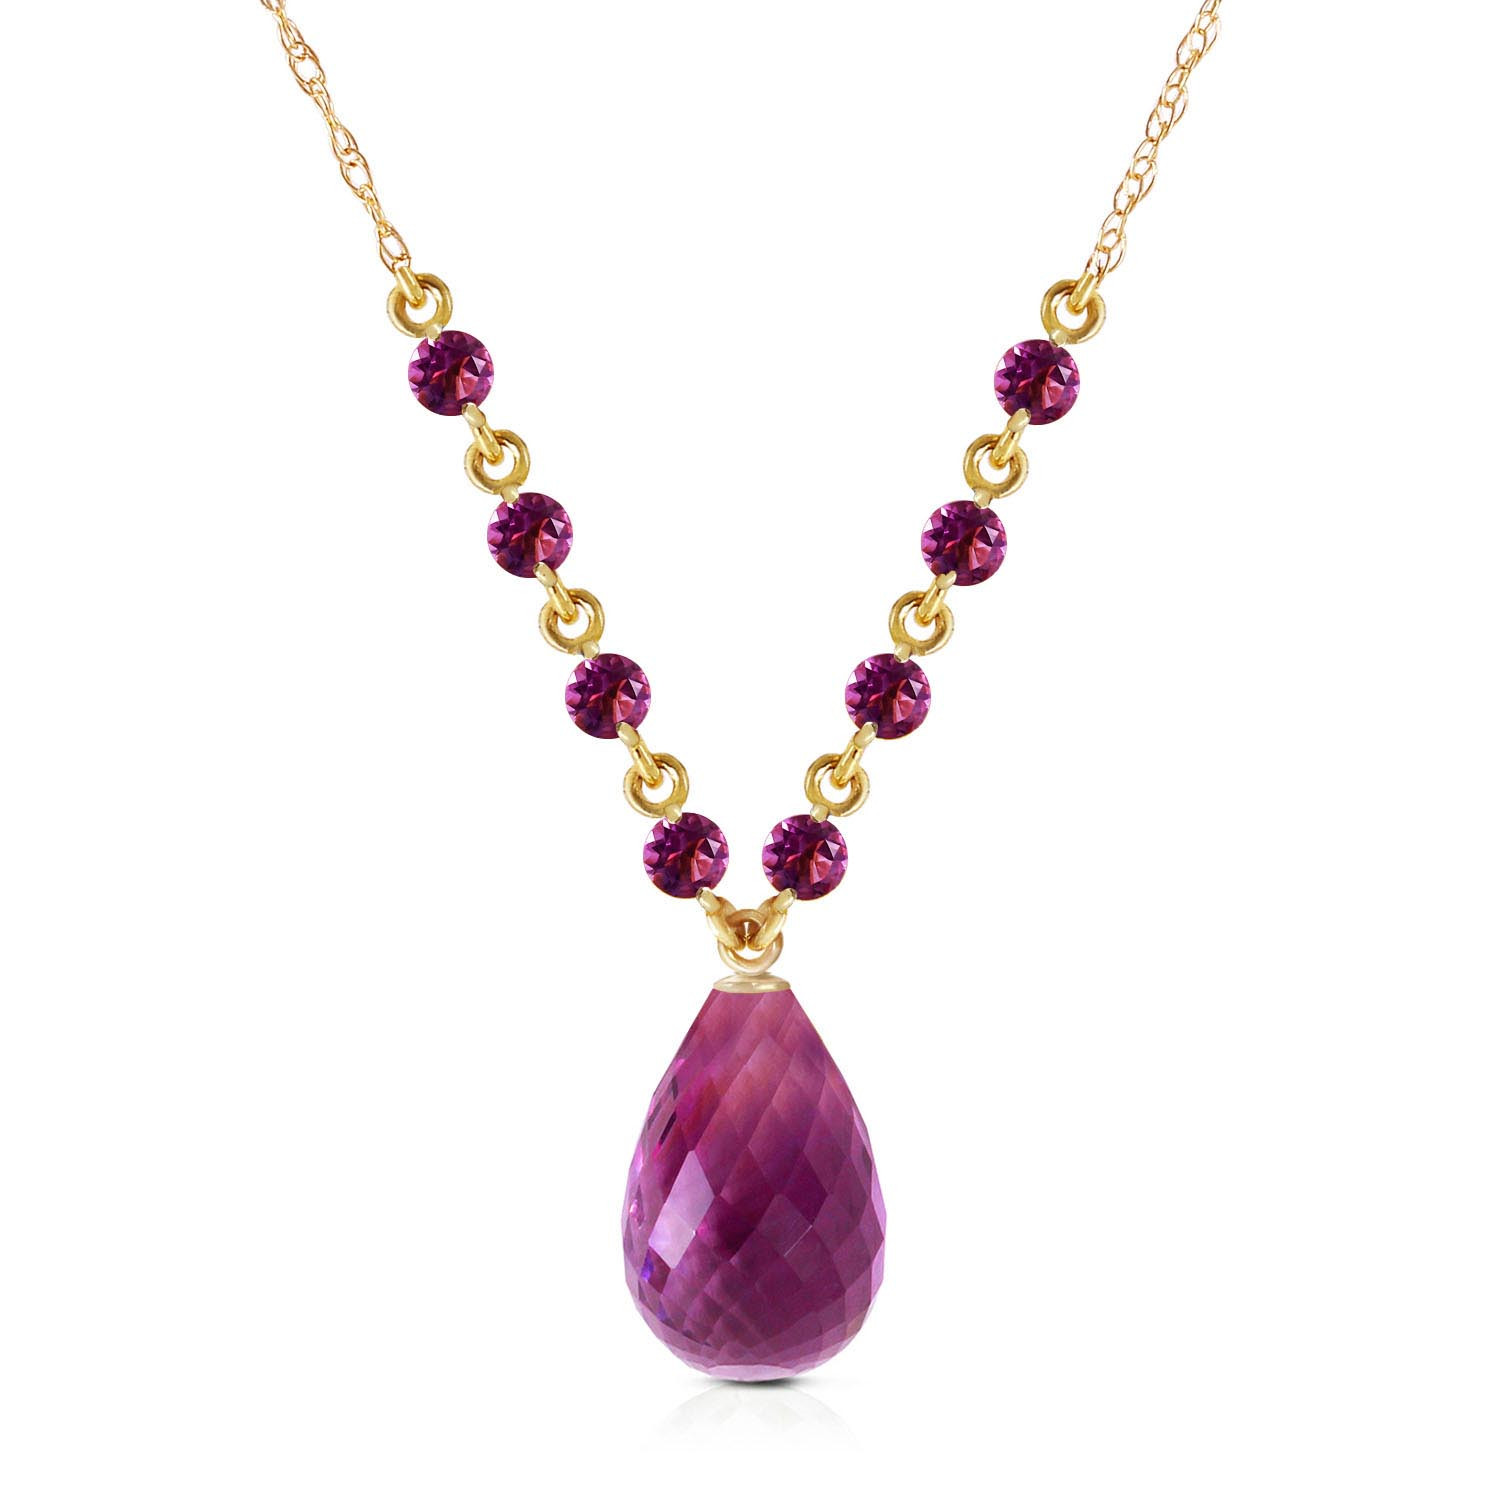 Briolette Cut Amethyst Pendant Necklace 11.5 ctw in 9ct Gold